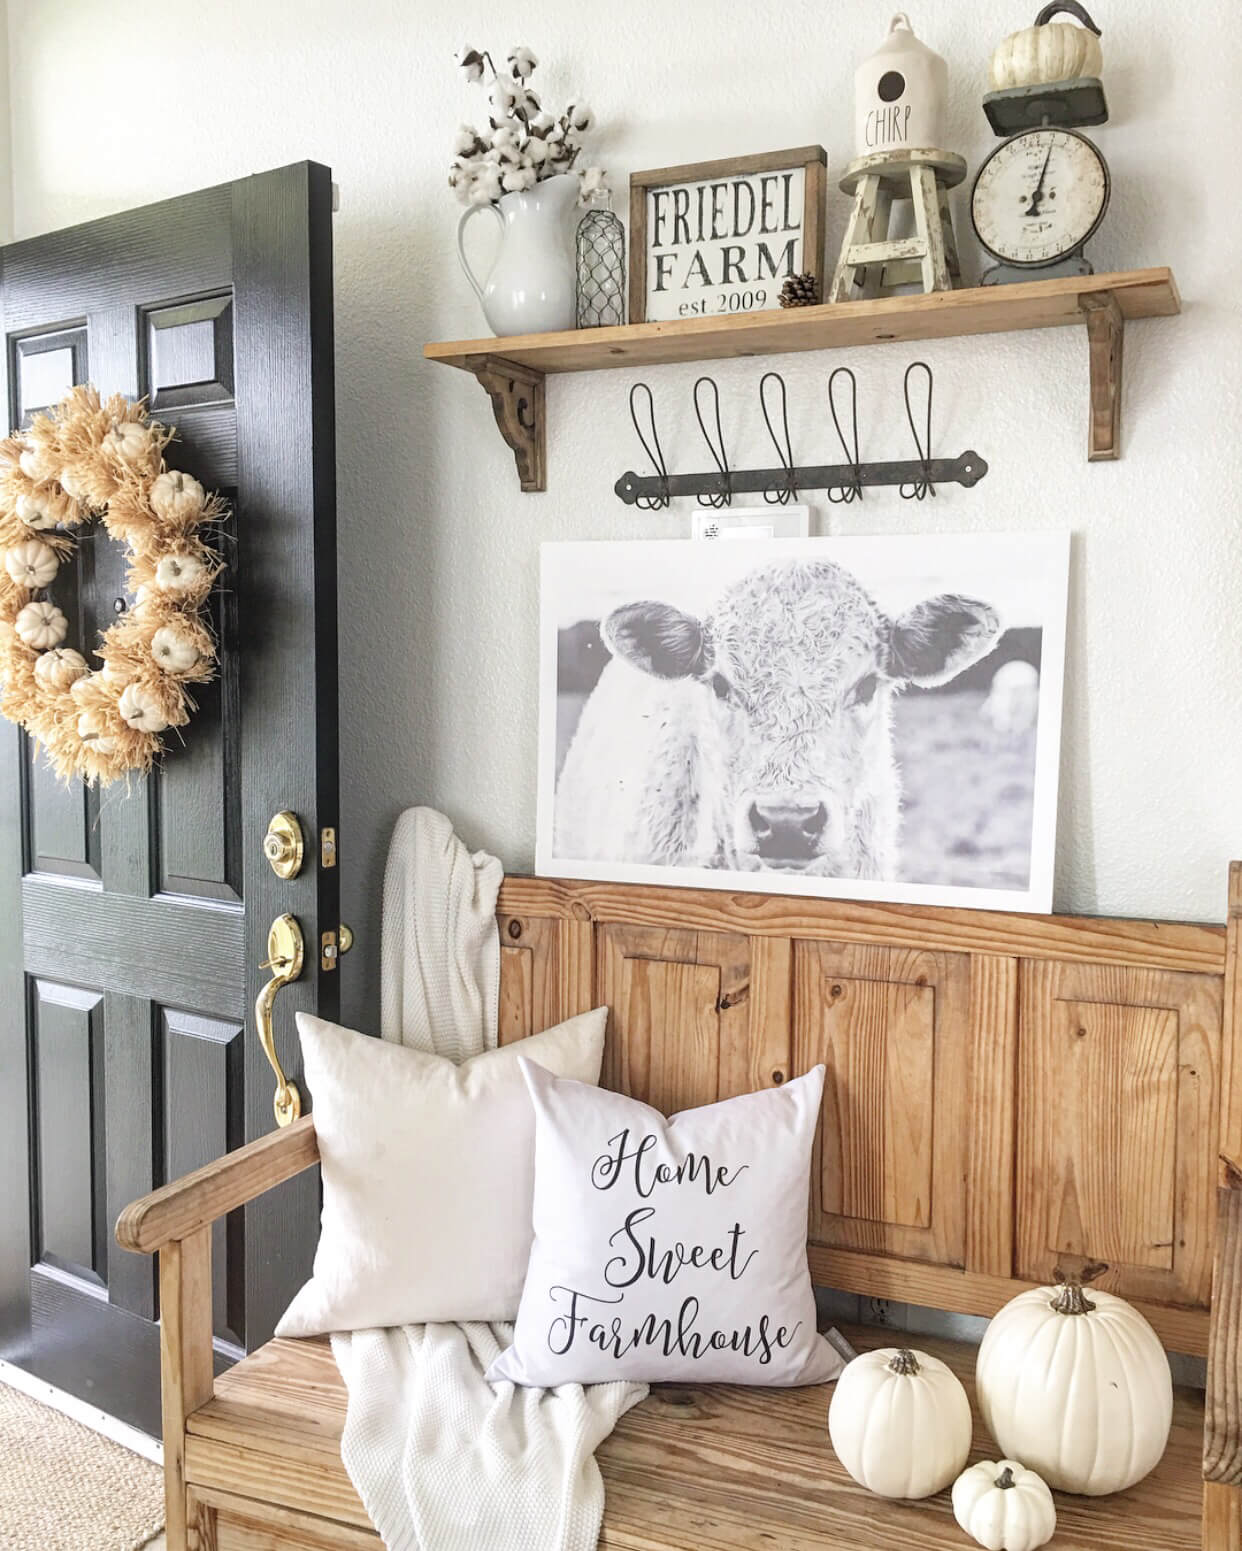 41 Gorgeous Rustic Home Decor Ideas To Make Your